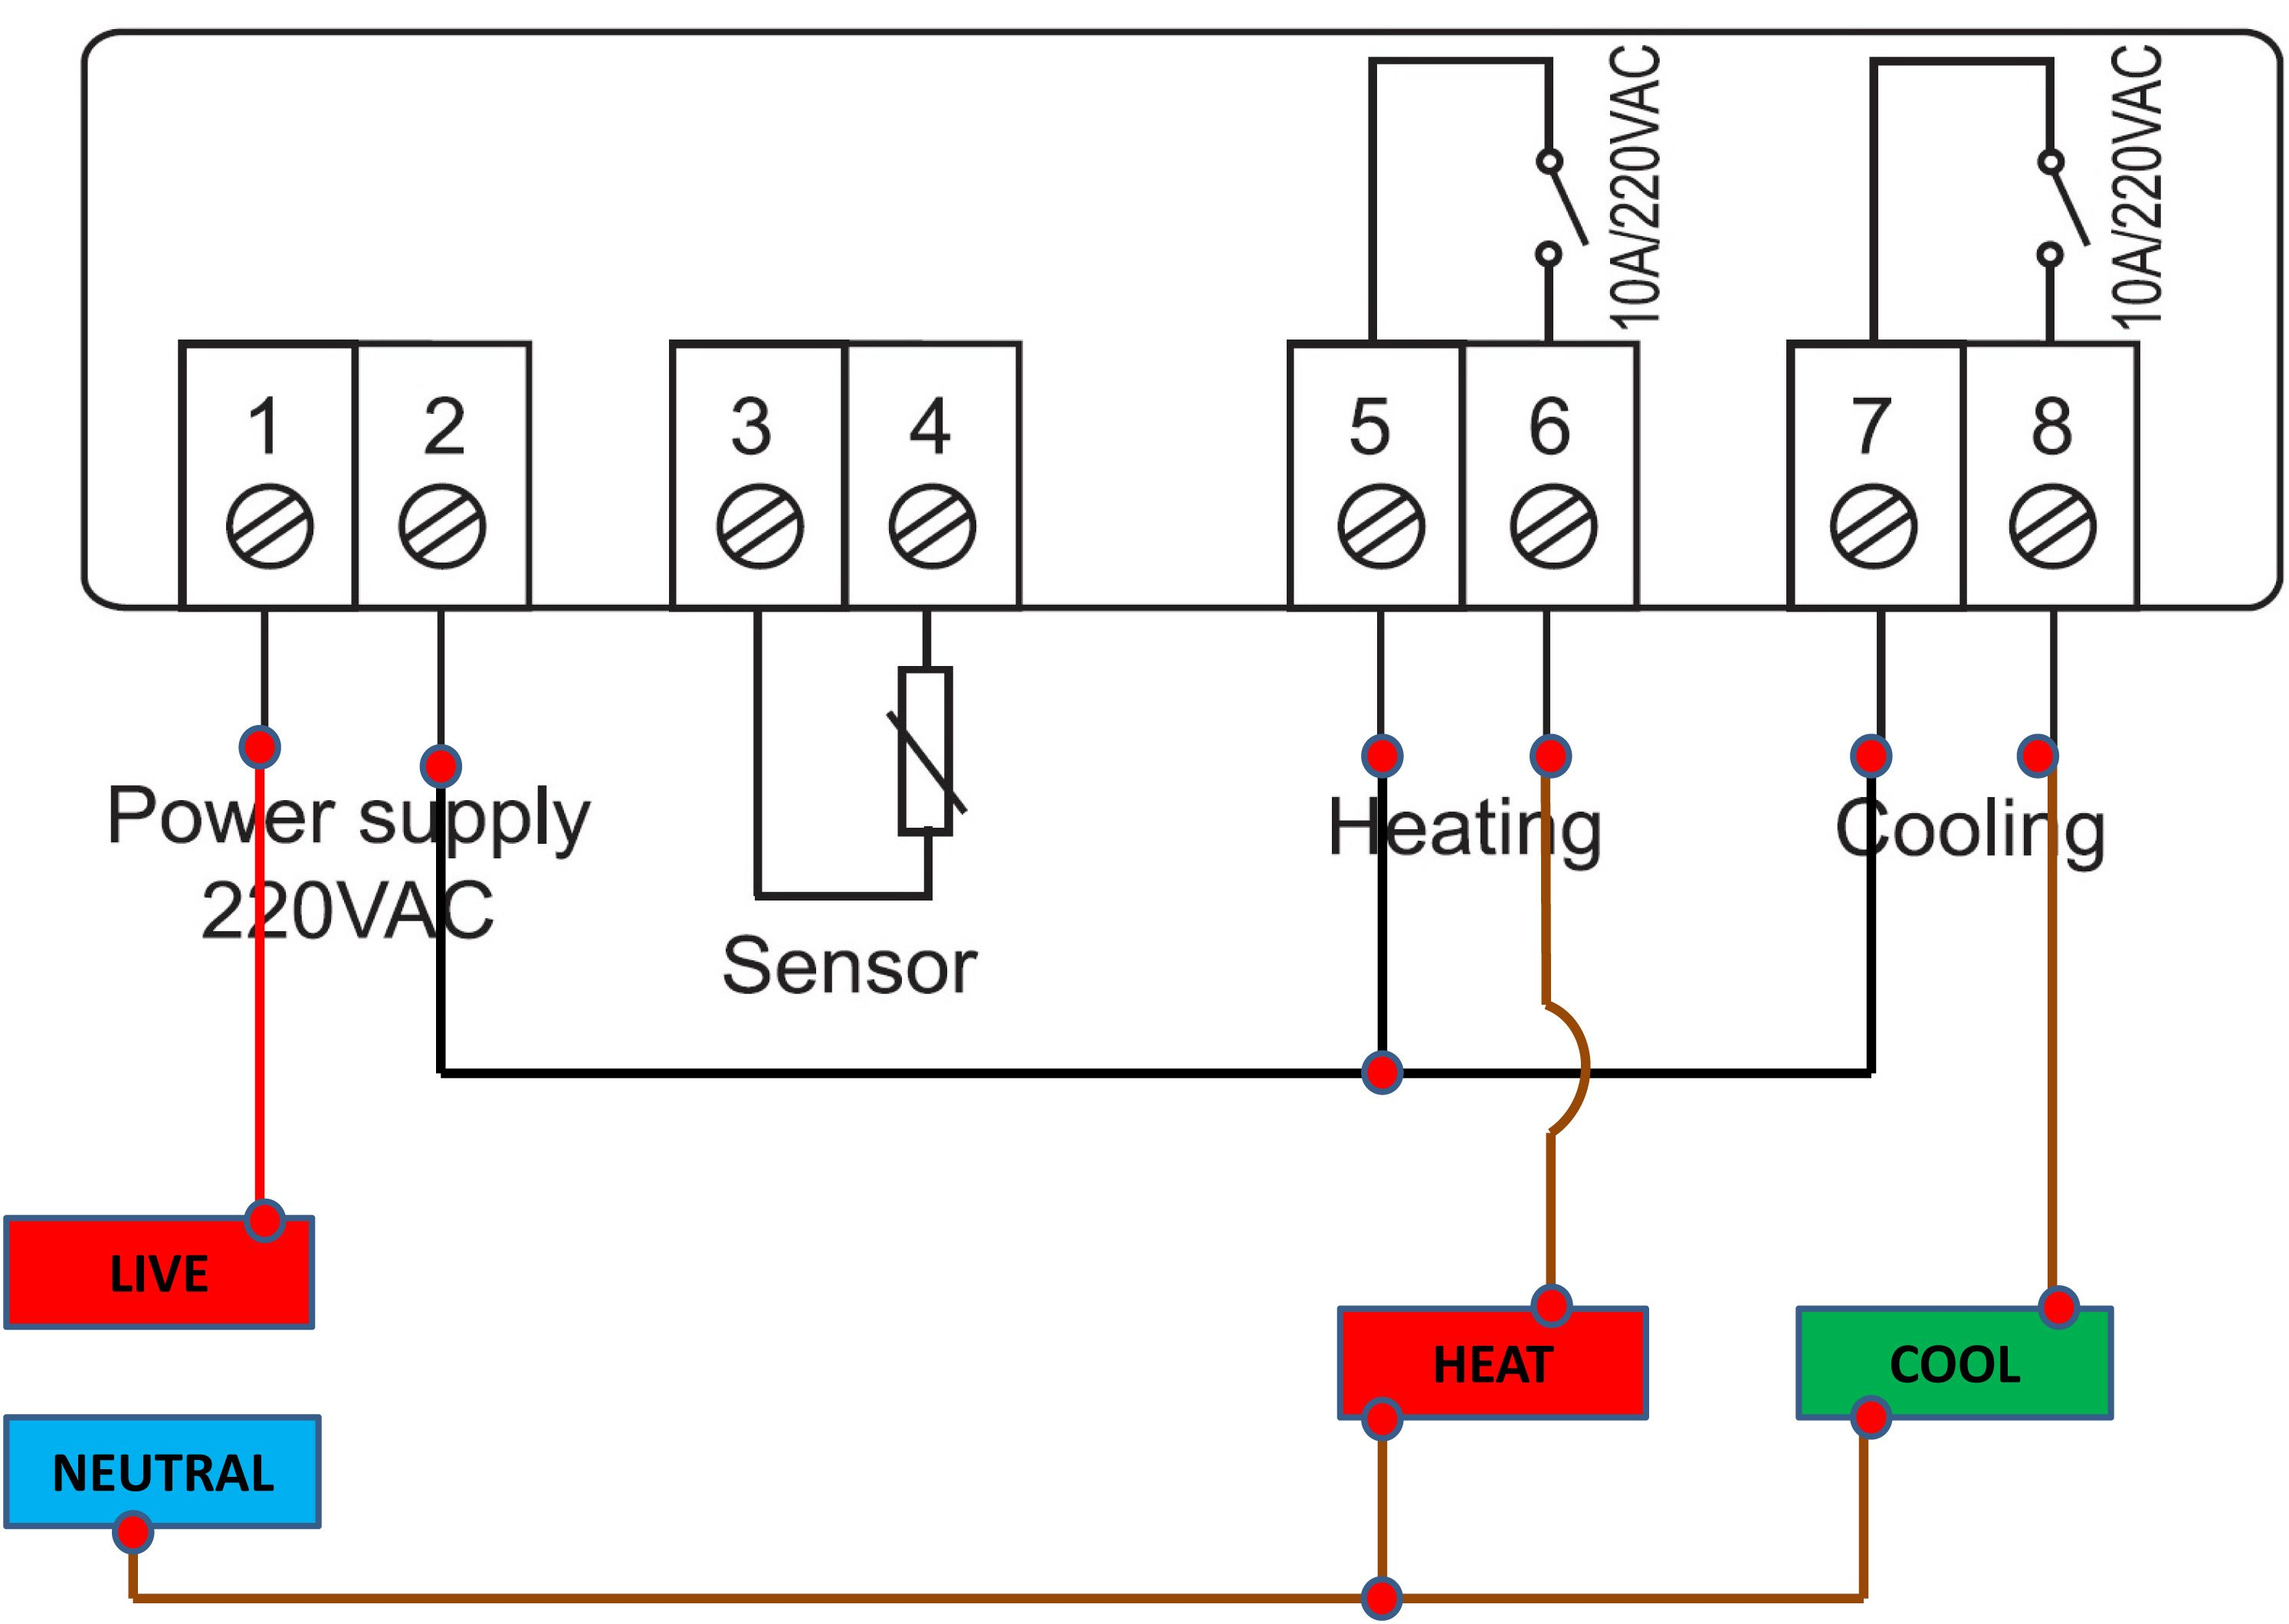 stc 1000 temperature controller wiring family life cycle diagram the elitech temeprature schematic